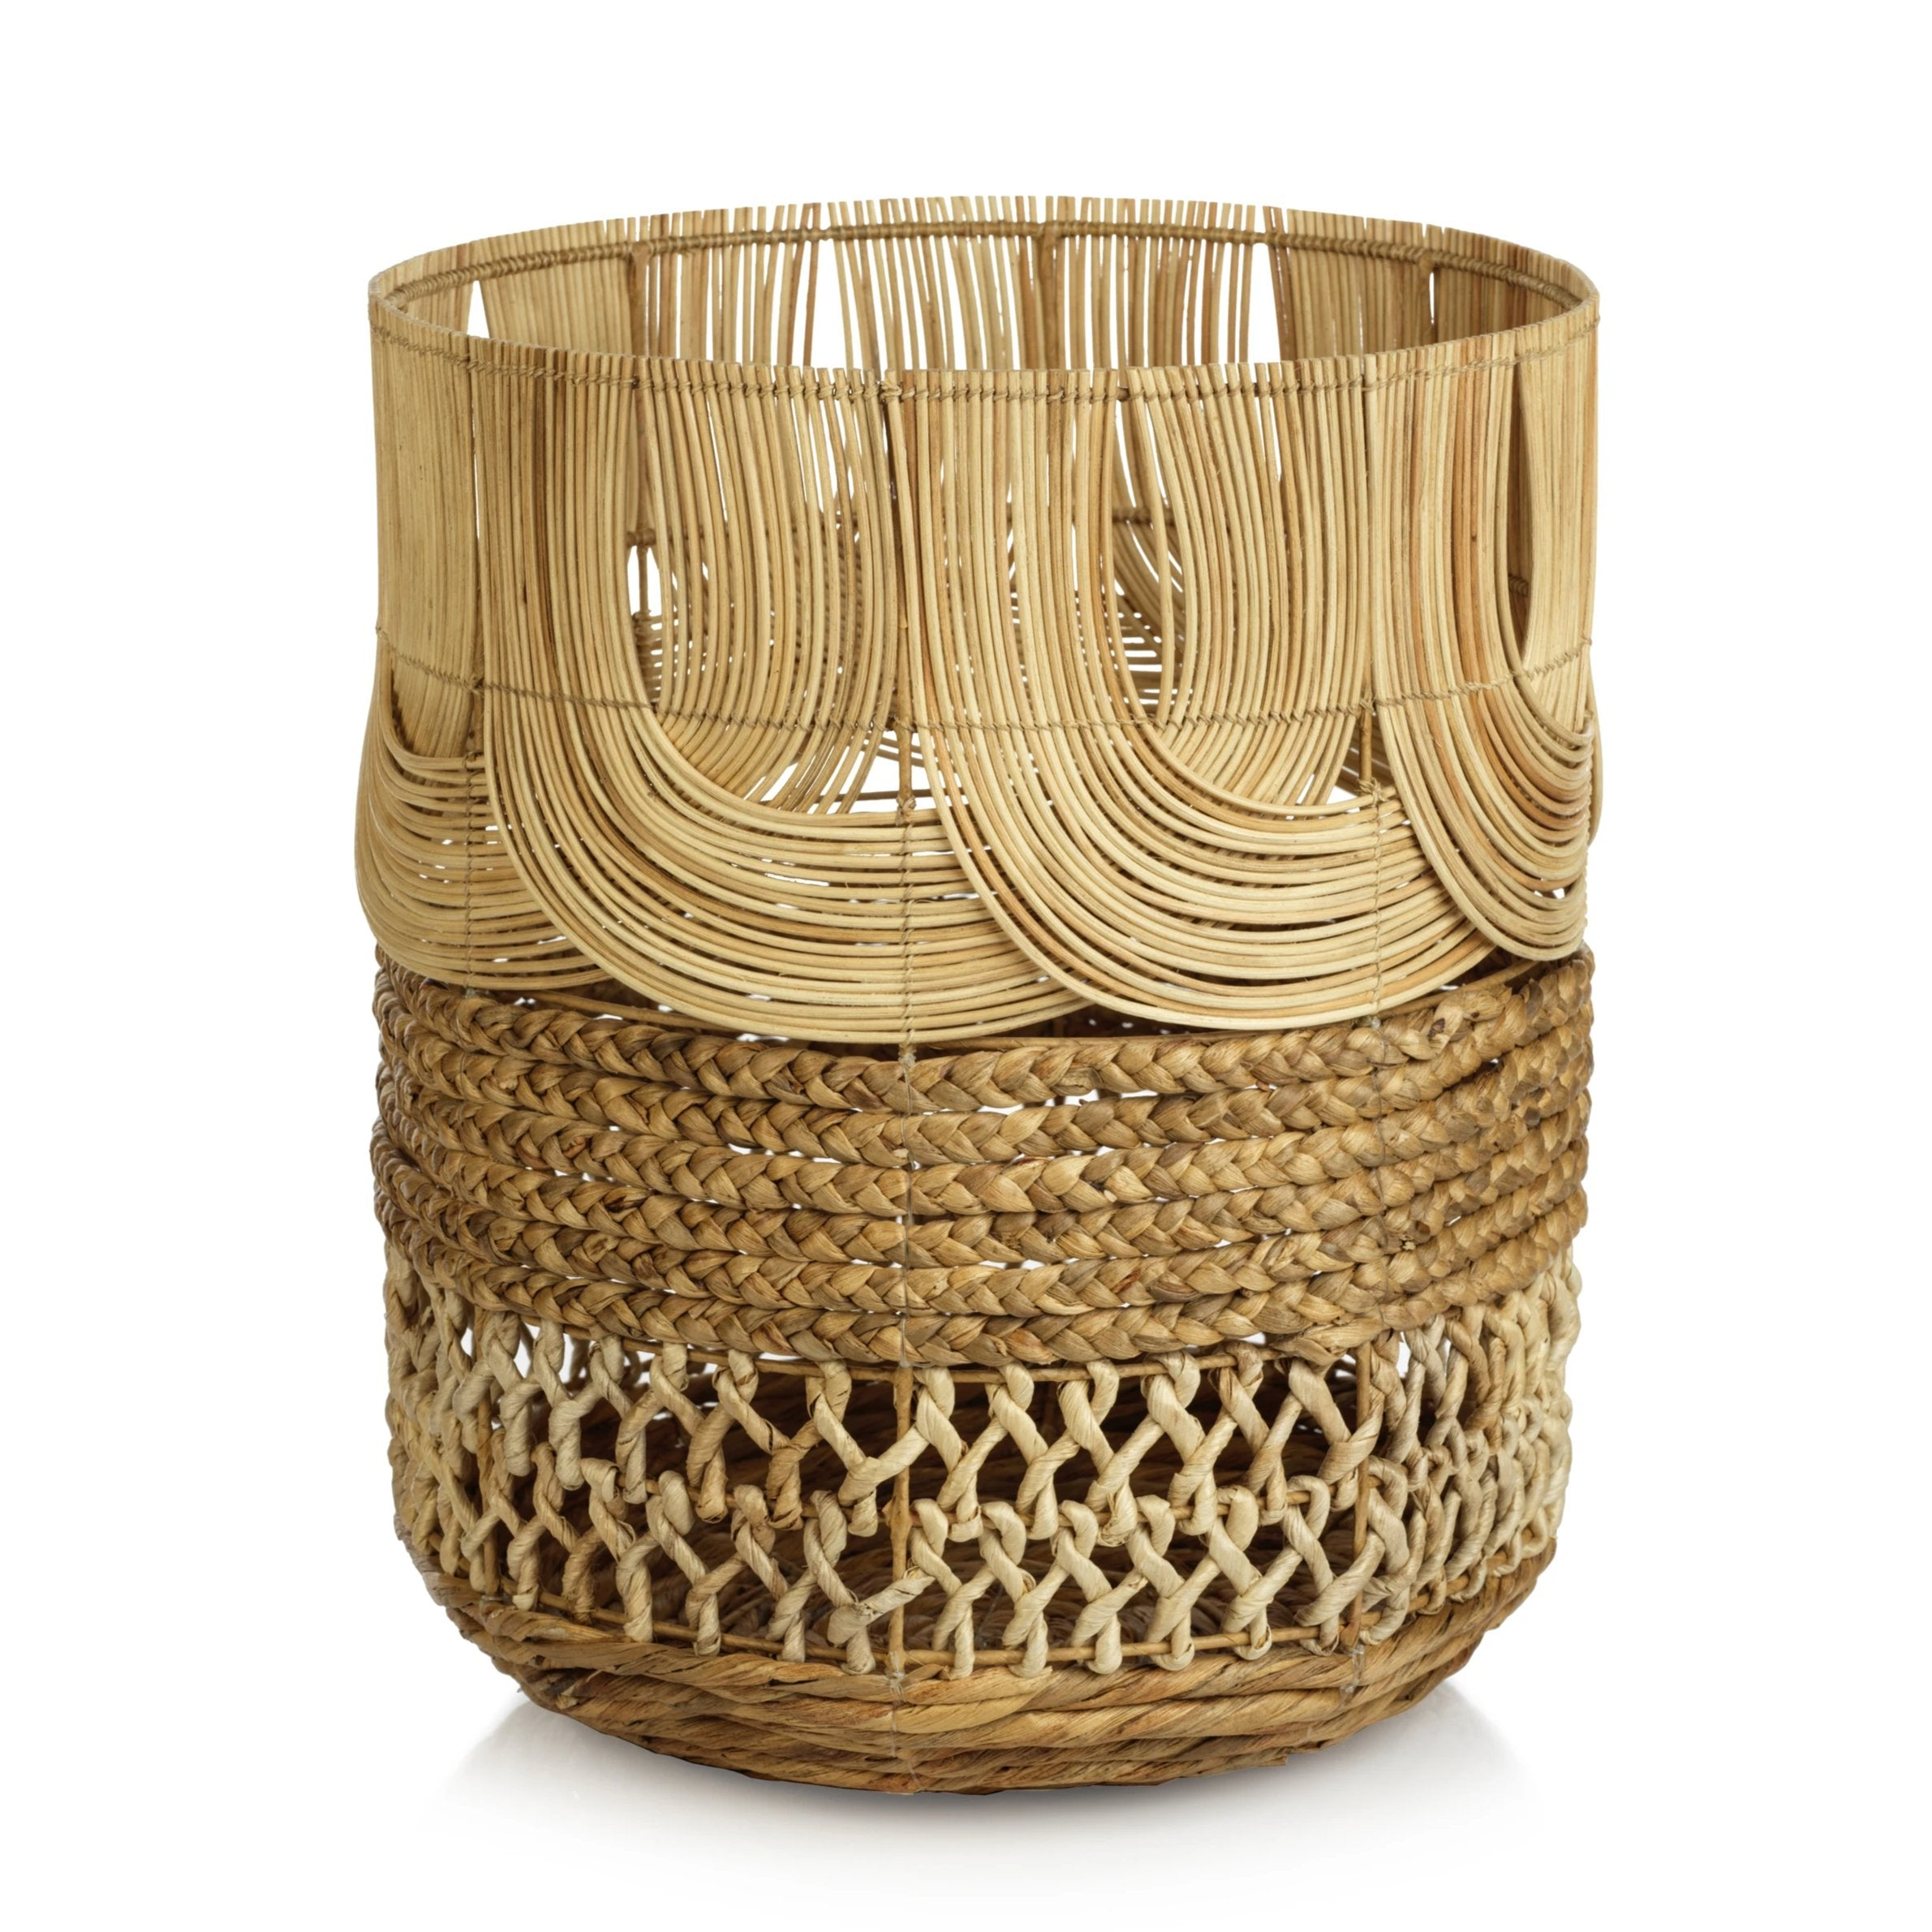 Rattan & Water Hyacinth Basket - CARLYLE AVENUE